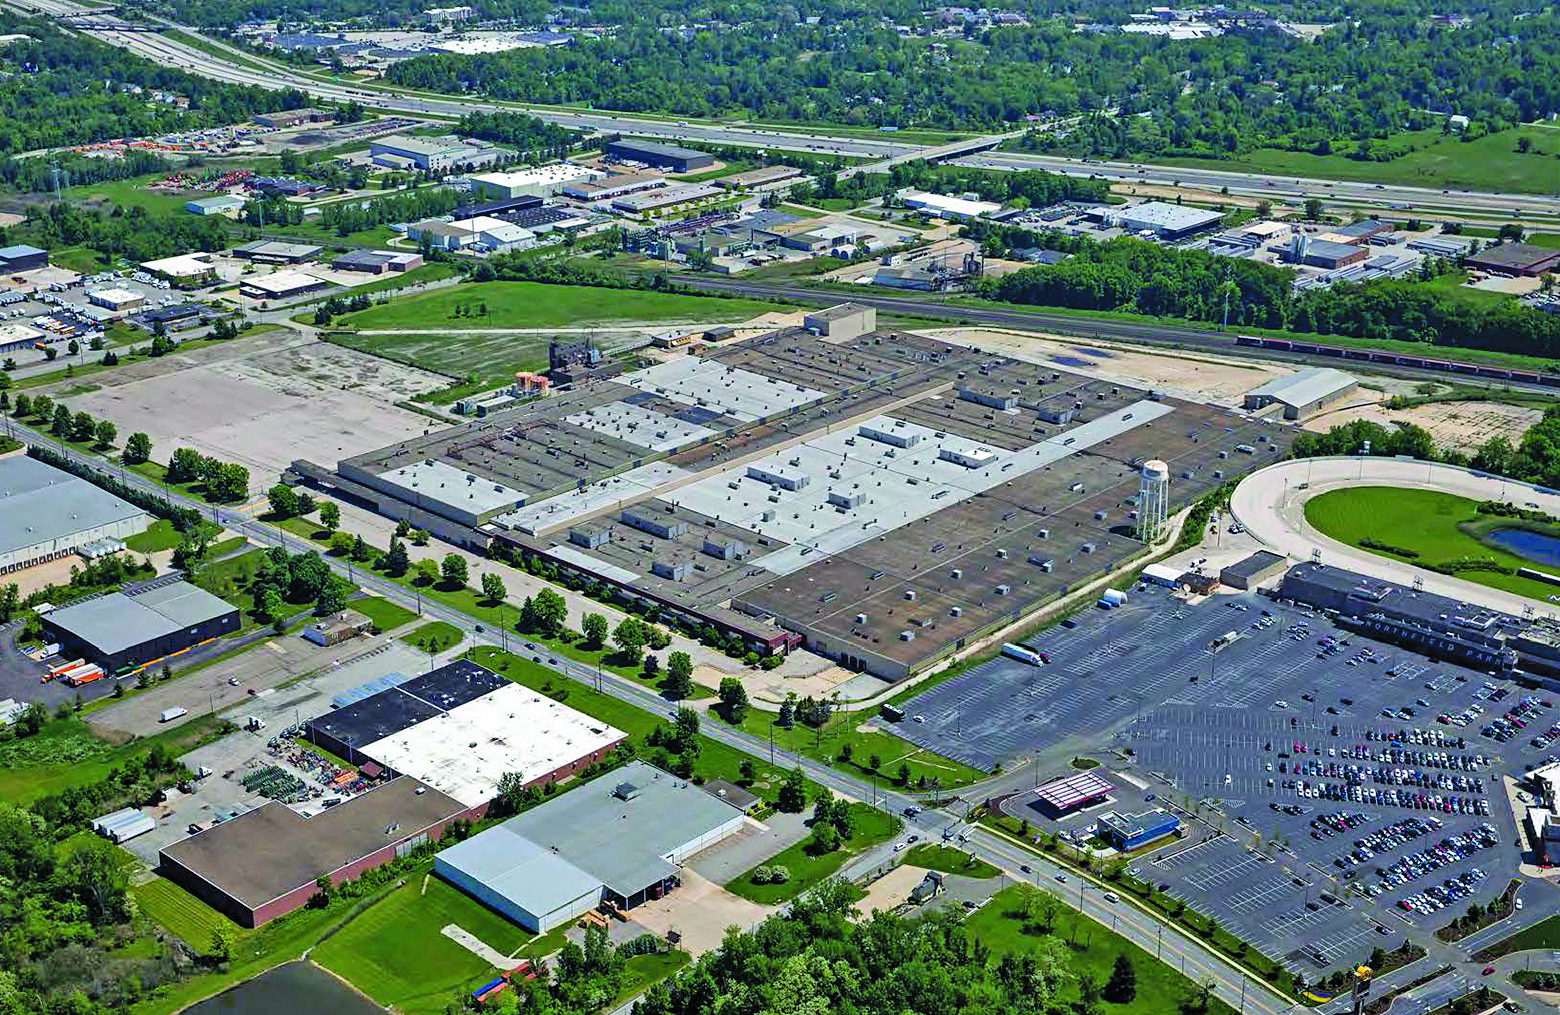 Walton hills hopeful as ford puts former plant on market